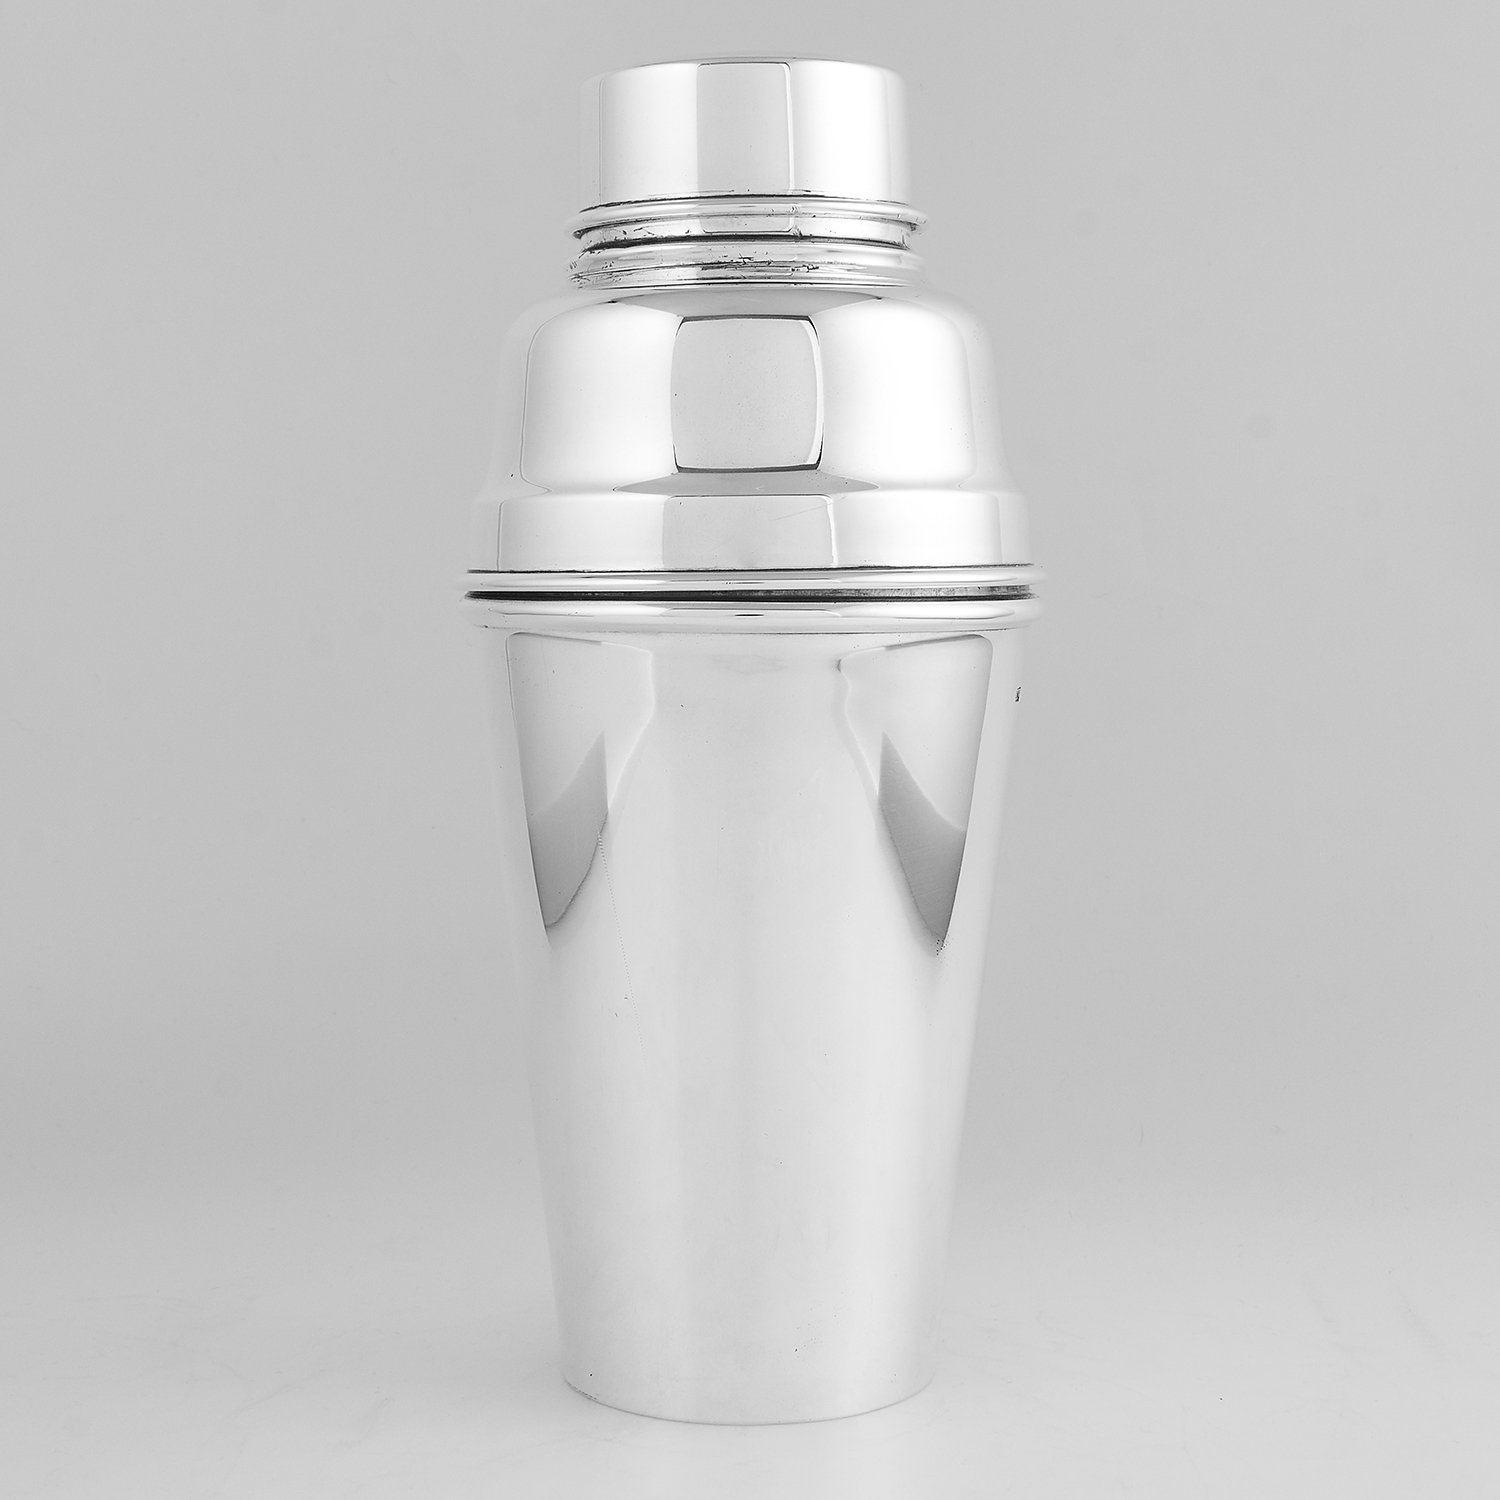 Los 68 - ANTIQUE GEORGE V STERLING SILVER COCKTAIL SHAKER, VINERS LTD LONDON 1934 the tapering body plain